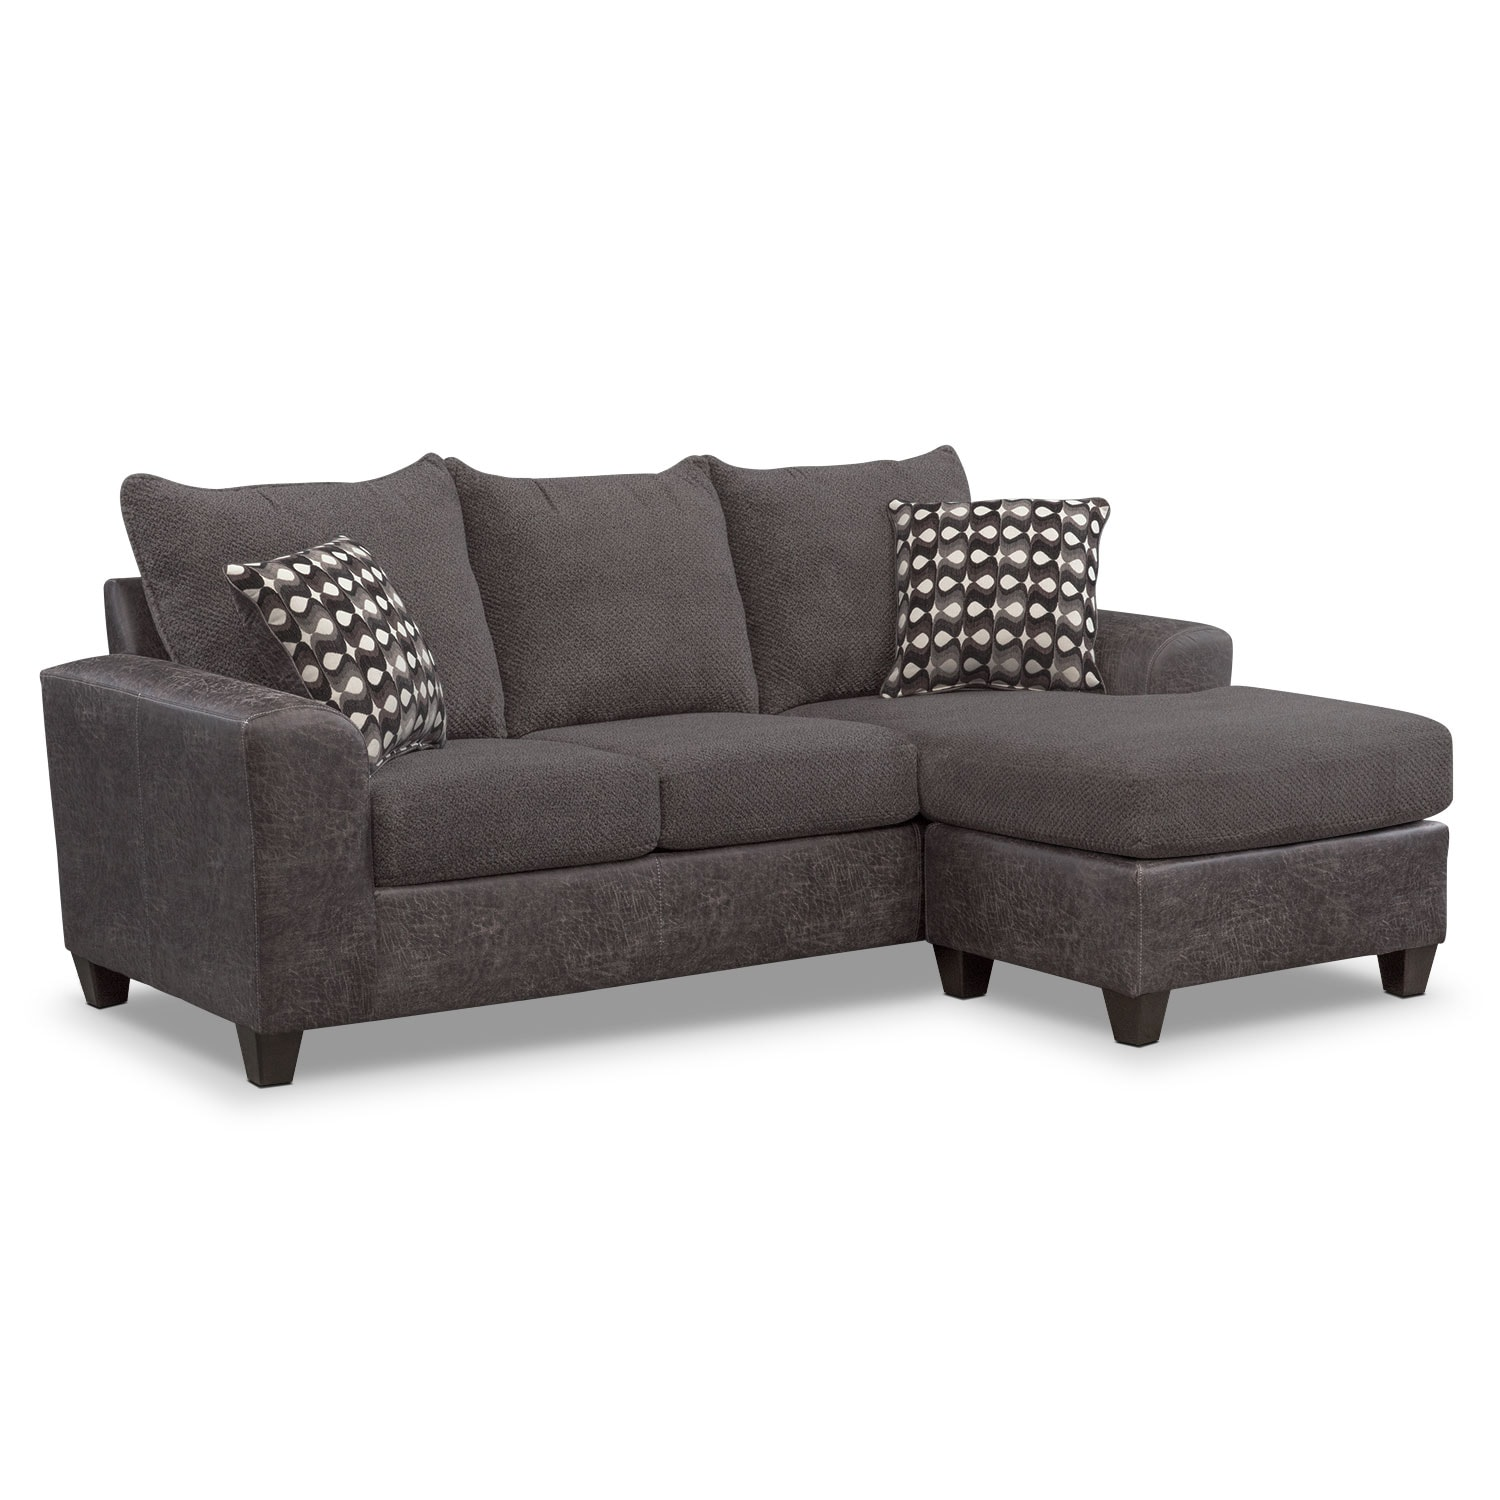 Brando 2-Piece Sofa with Chaise